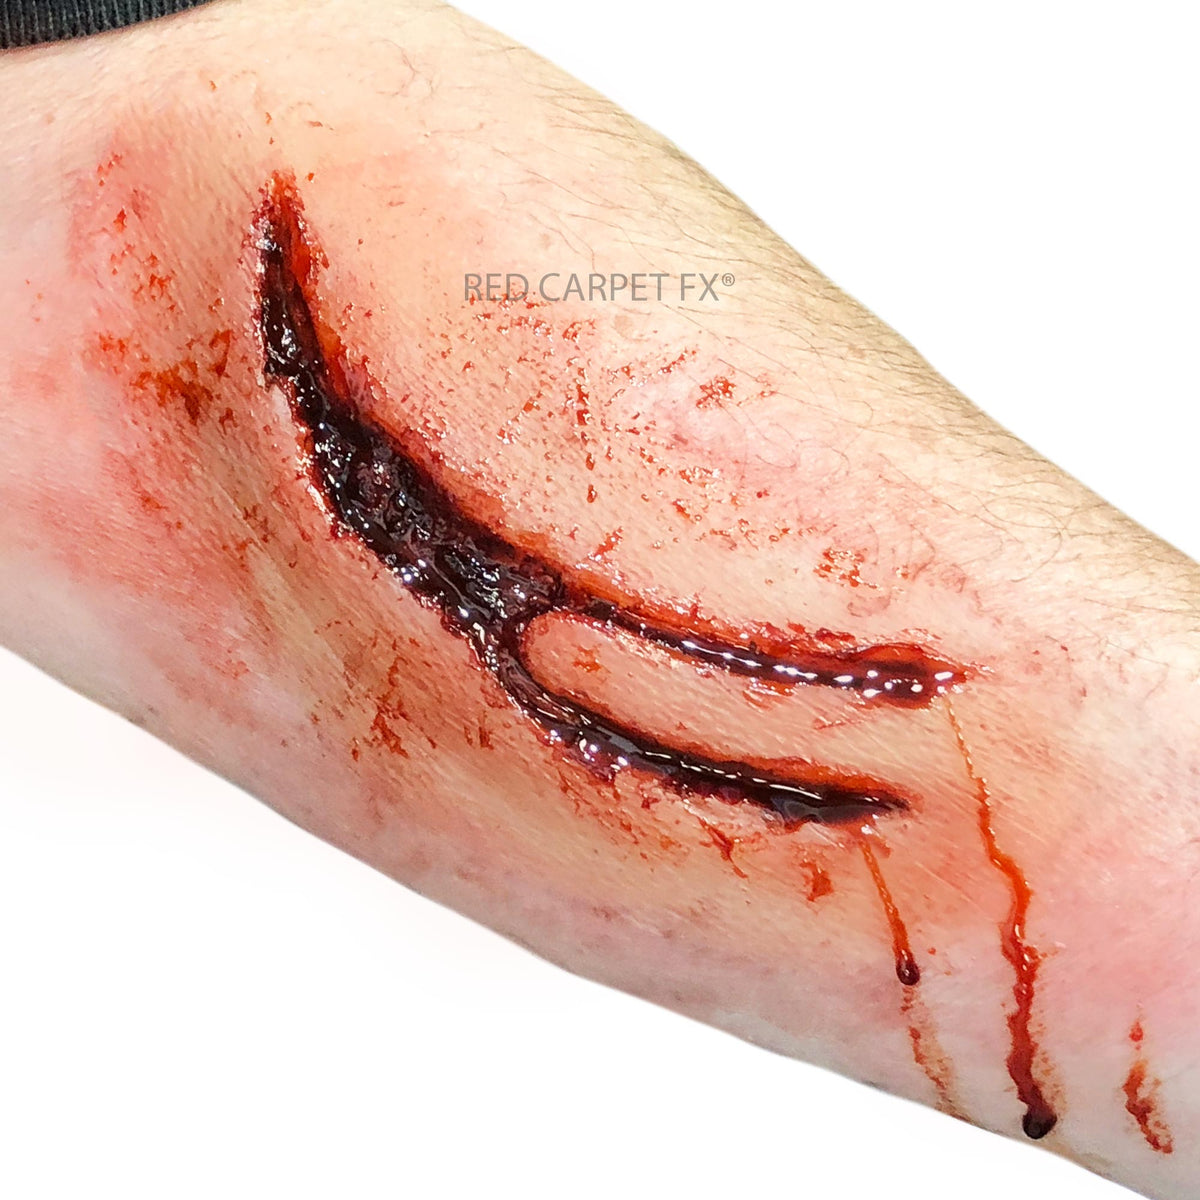 Monster FX Gelatine or Silicone Prosthetic - Machette Laceration - Red Carpet FX - Professional Makeup